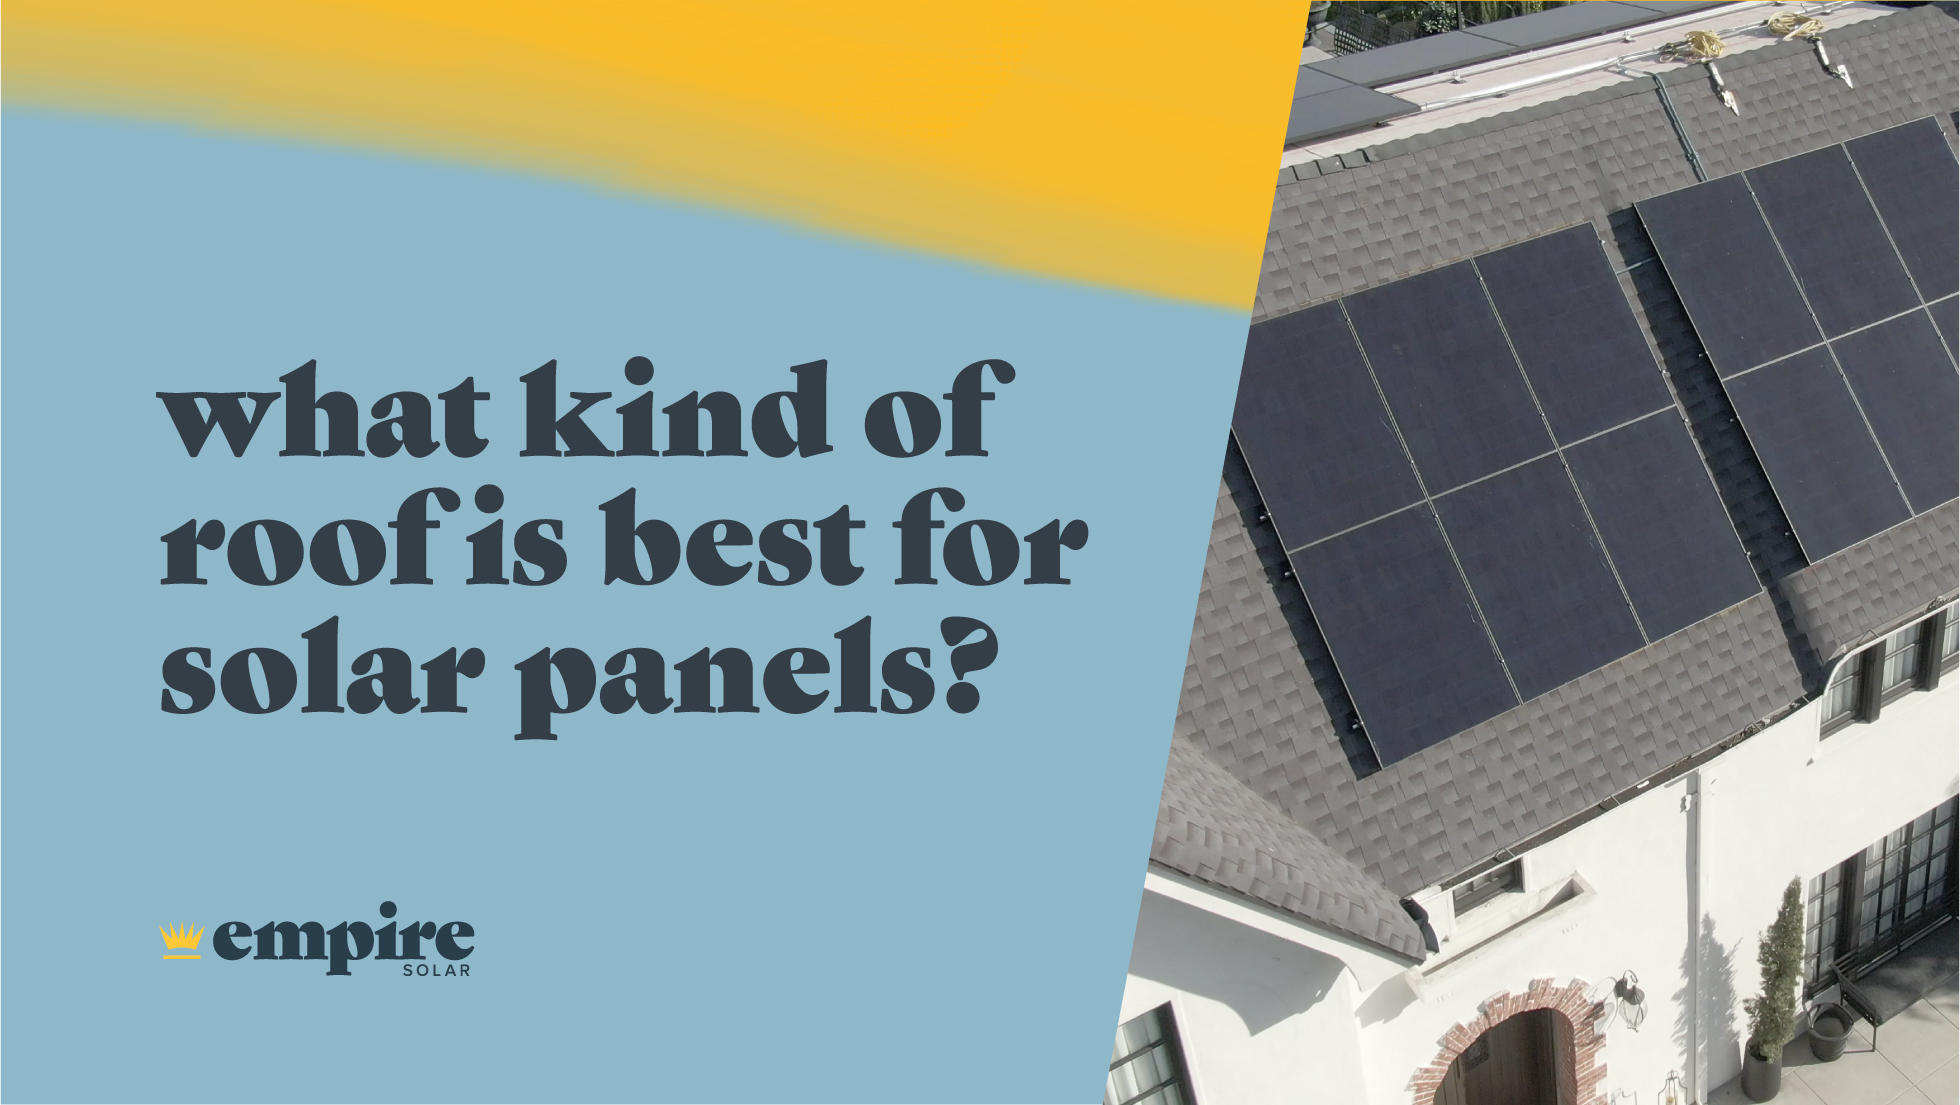 Which Roofs Are Best for Solar Panels? How to Make Sure Your Roof Is Solar-Ready